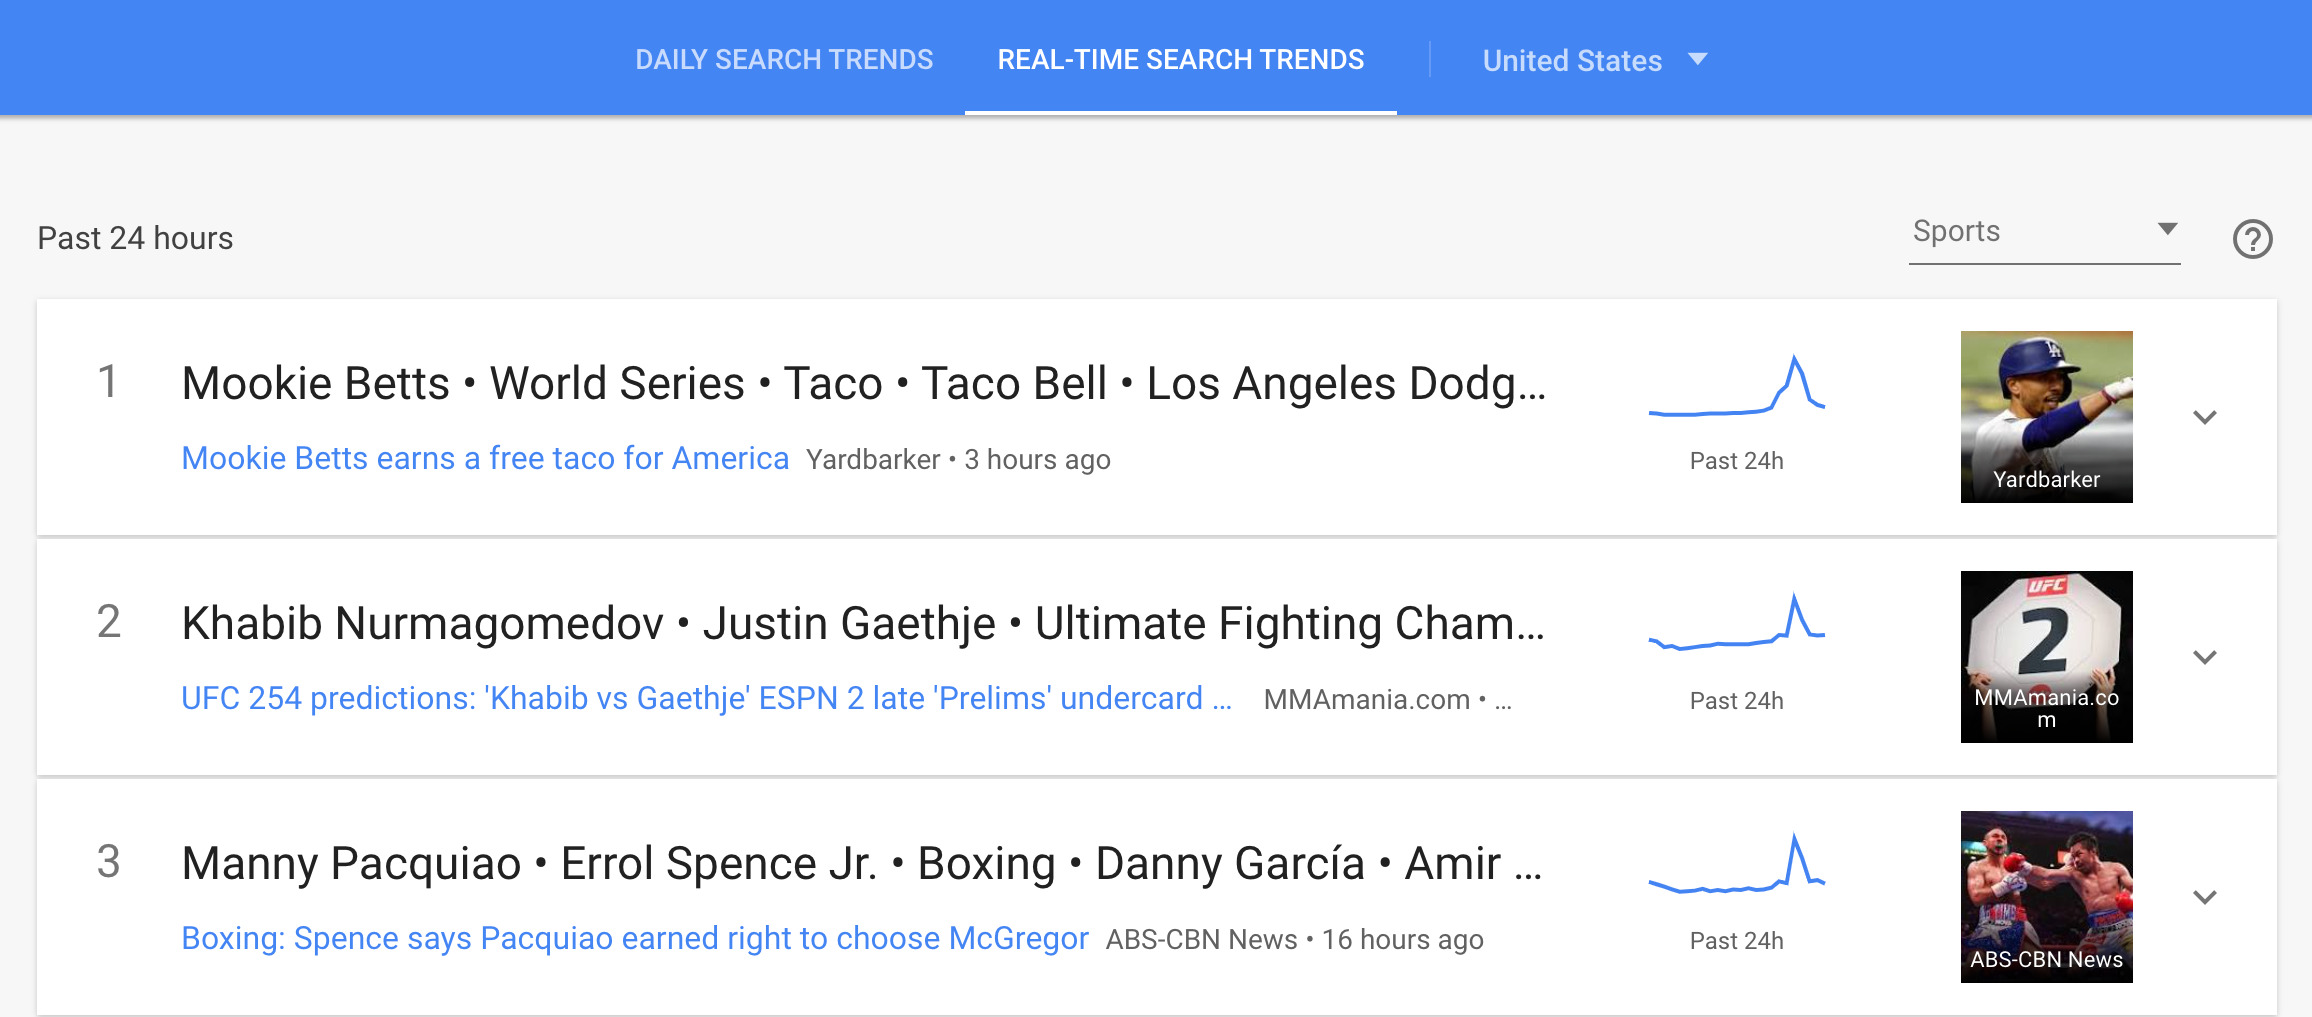 Real time search trends